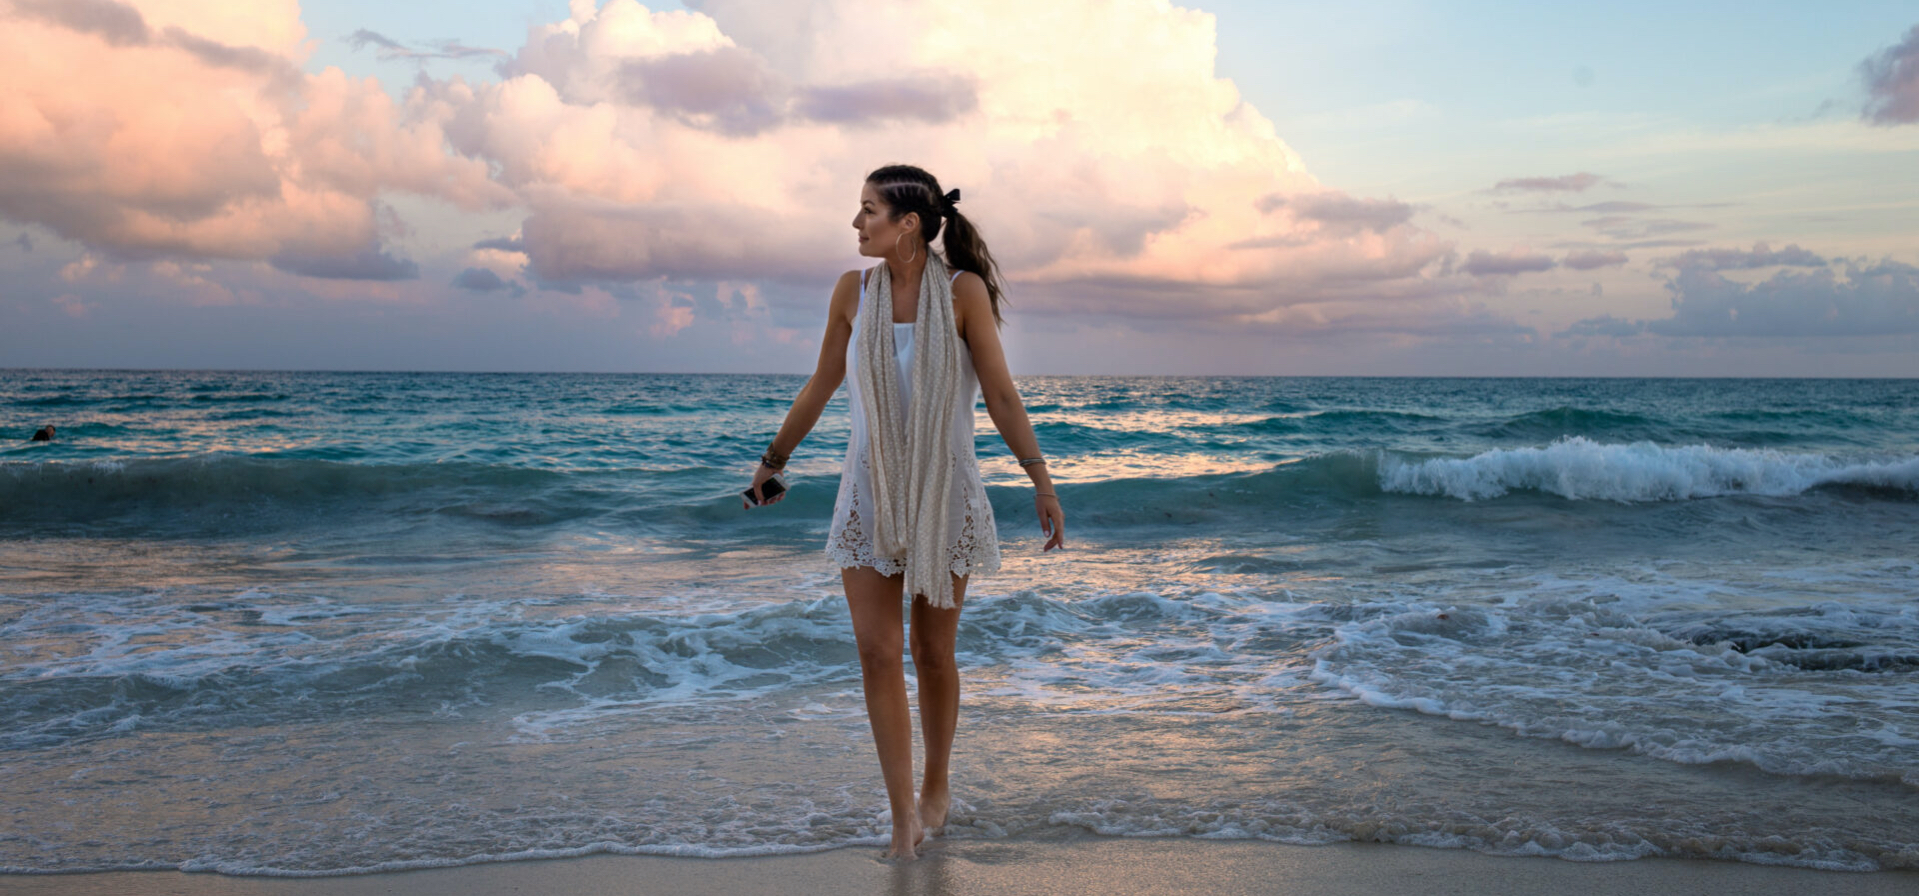 Taylor in a white dress standing in front of the sea, with a pink sunset in the background